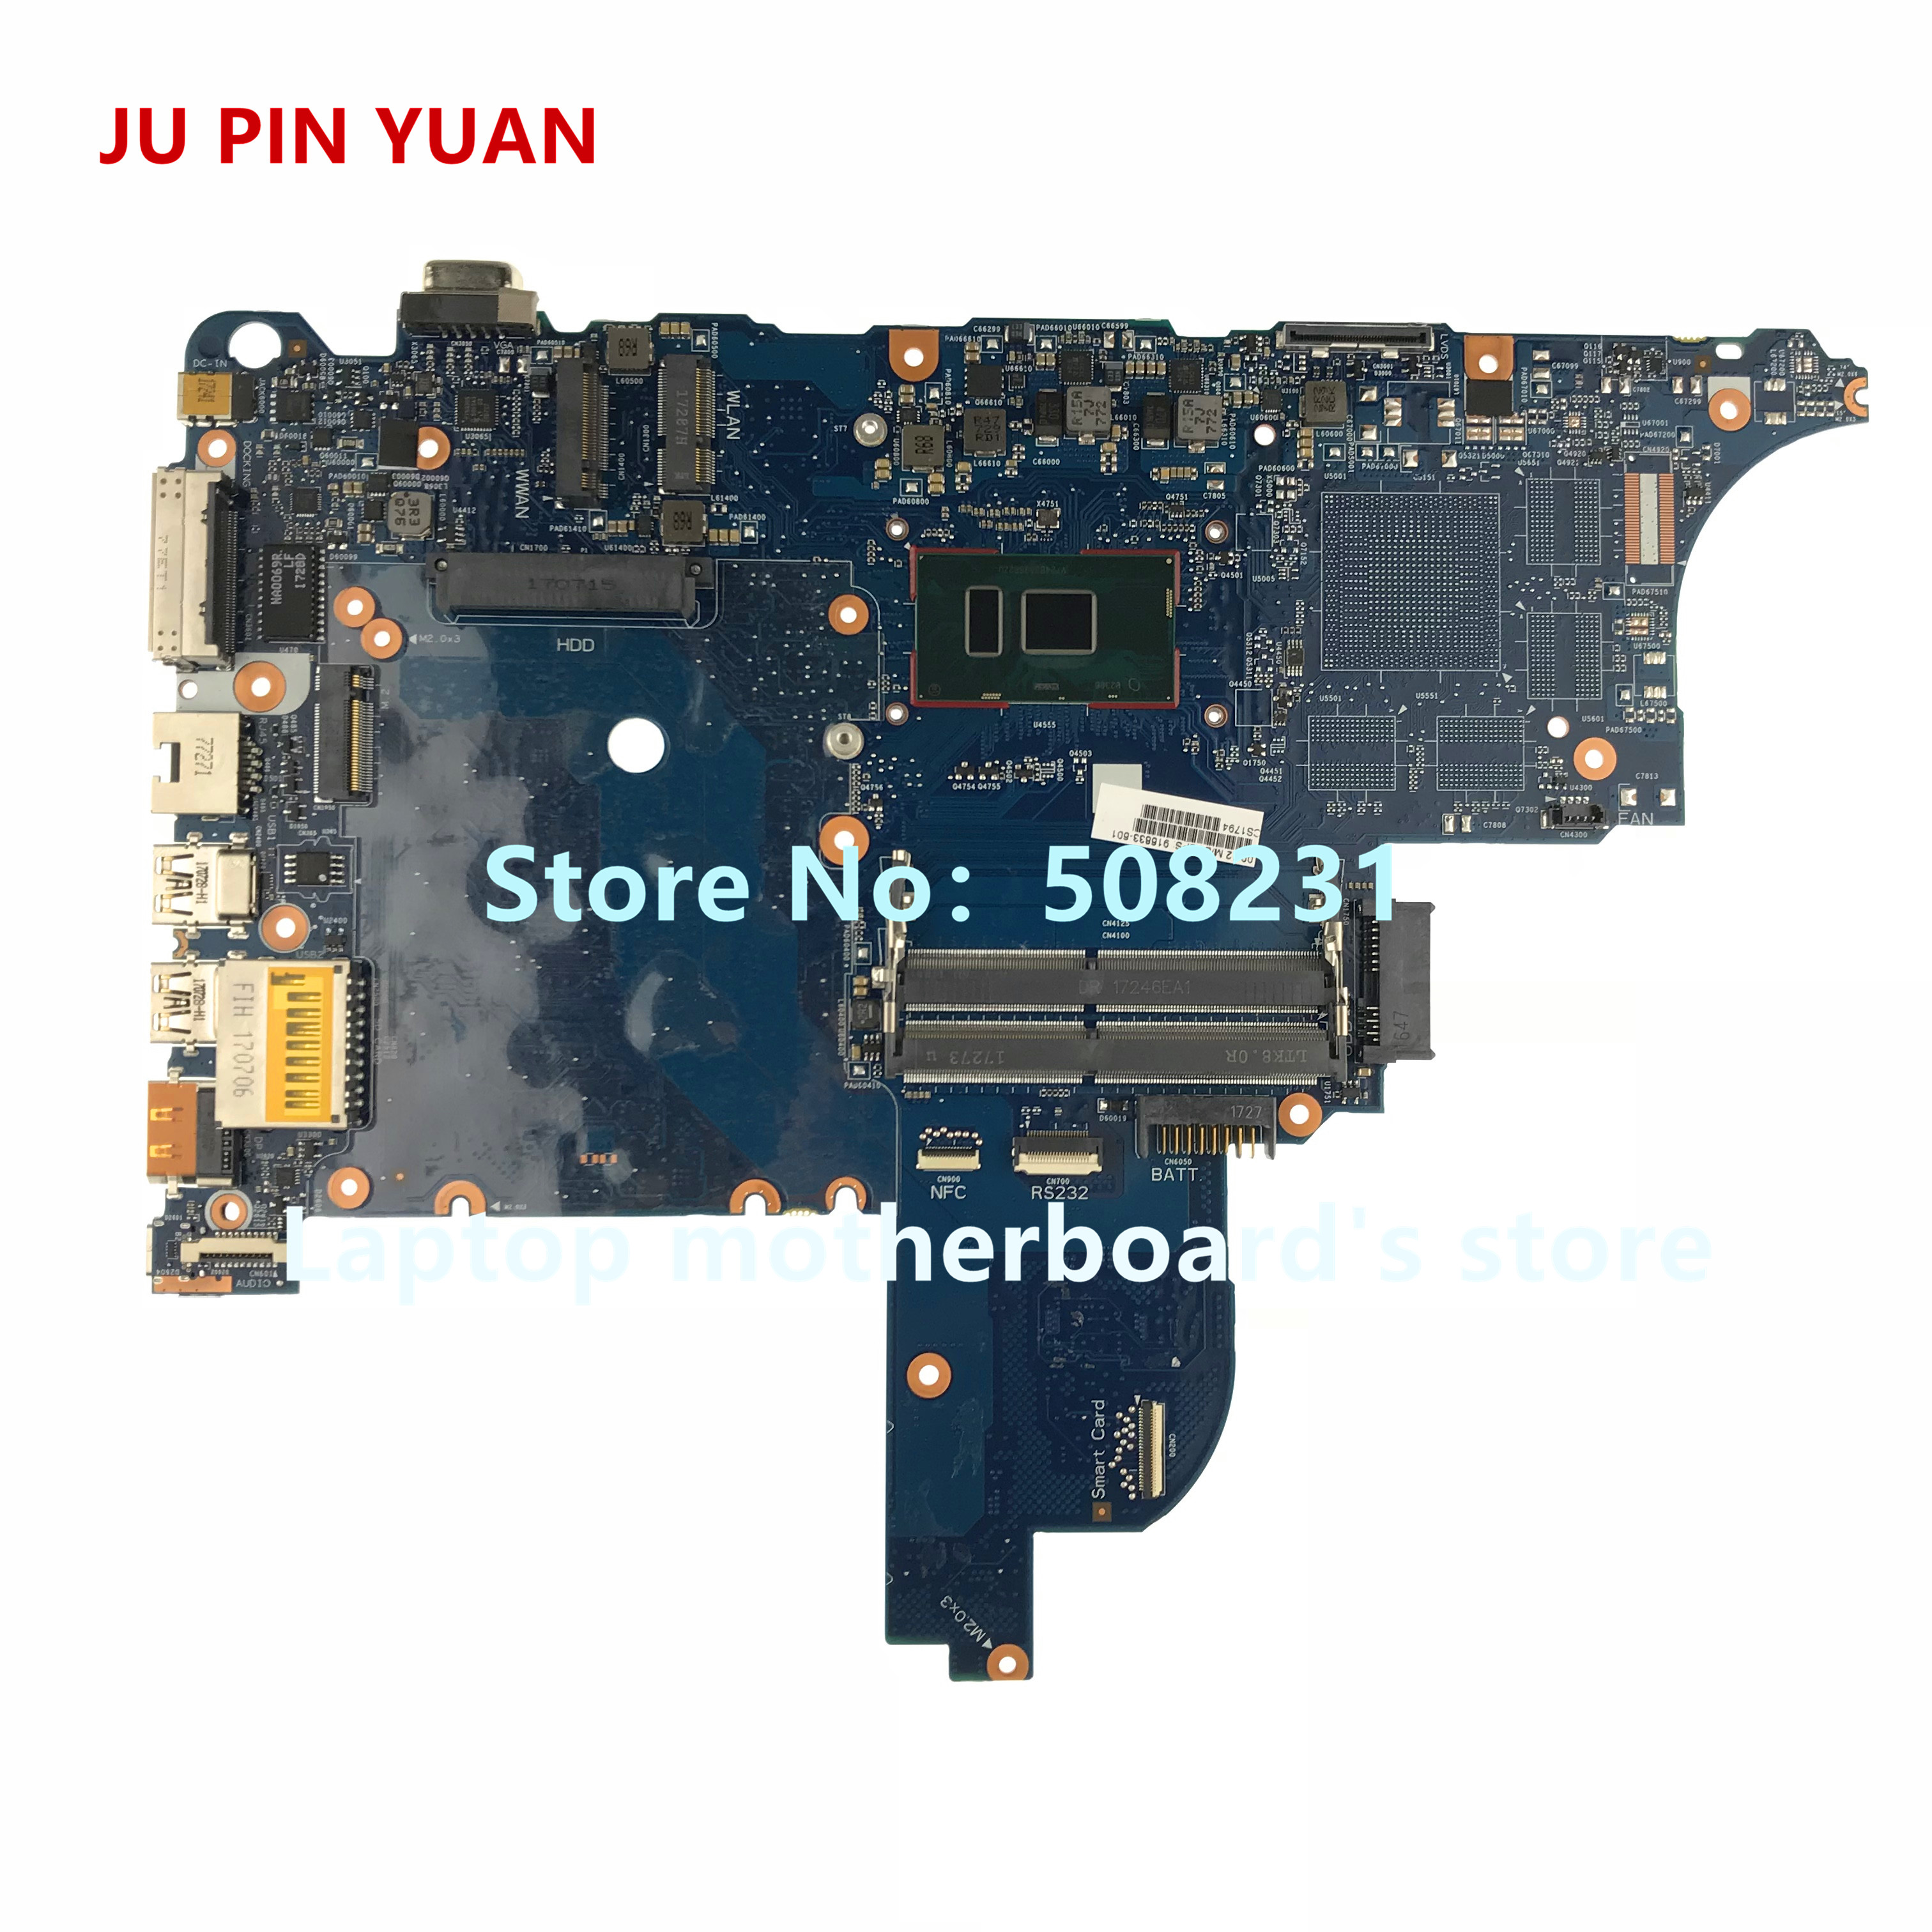 JU PIN YUAN 916833-601 916833-001 Laptop motherboard For HP ProBook 640 G3 <font><b>650</b></font> G3 Notebook PC <font><b>i5</b></font>-7200U fully Tested image